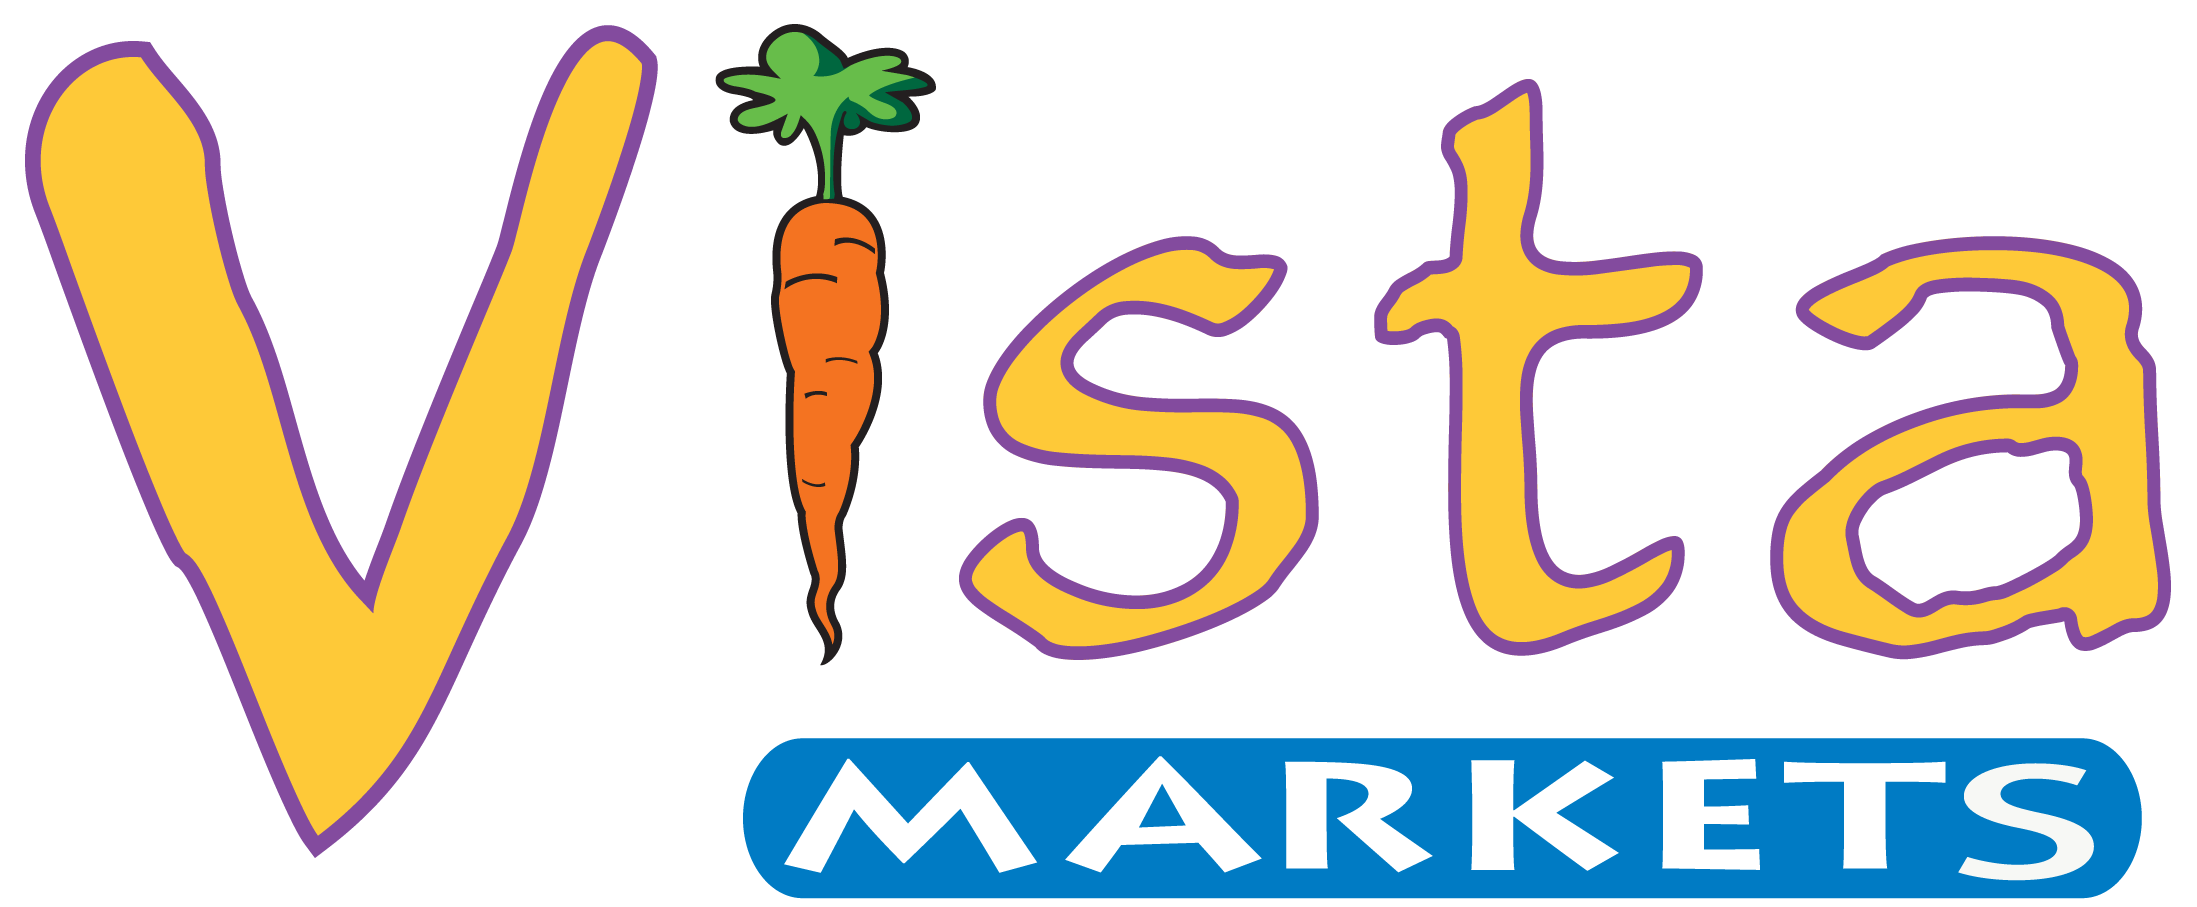 Vista Markets